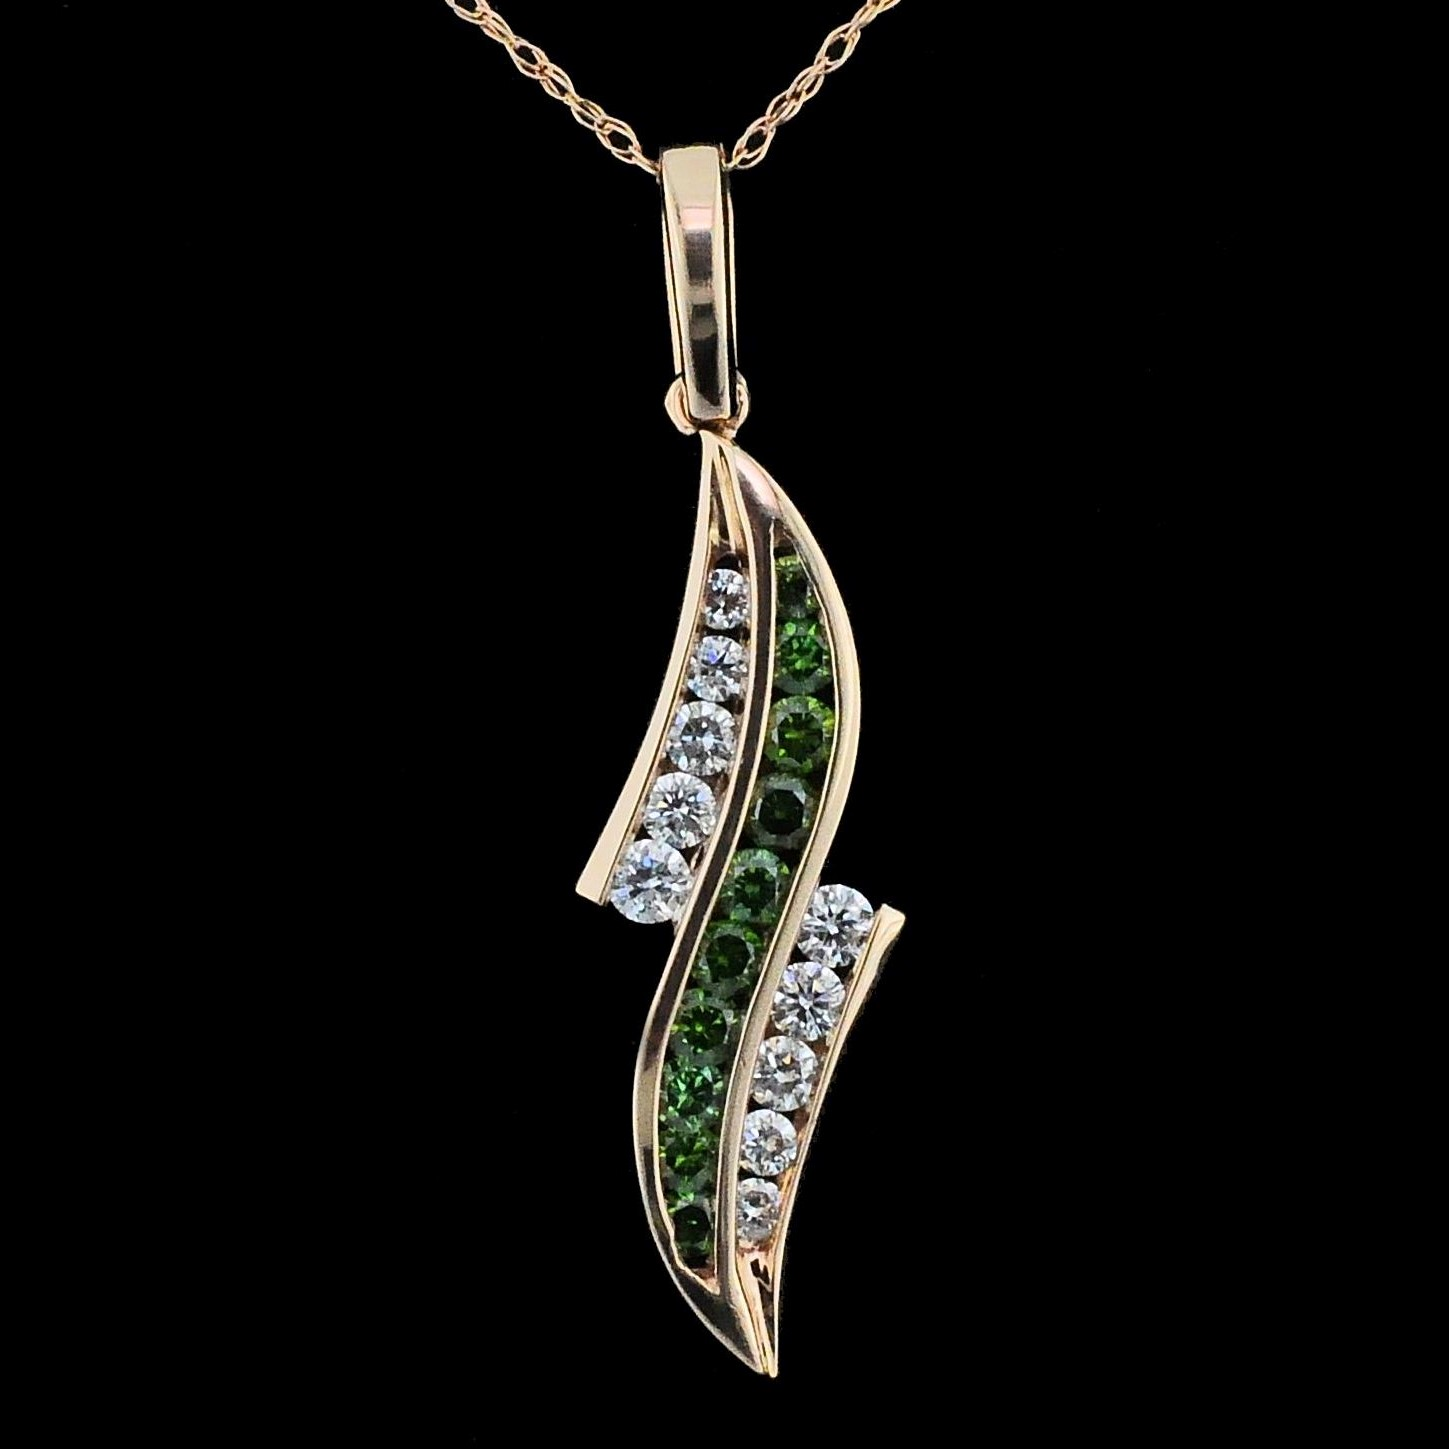 DeLeo Colored Diamond Pendant by DeLeo